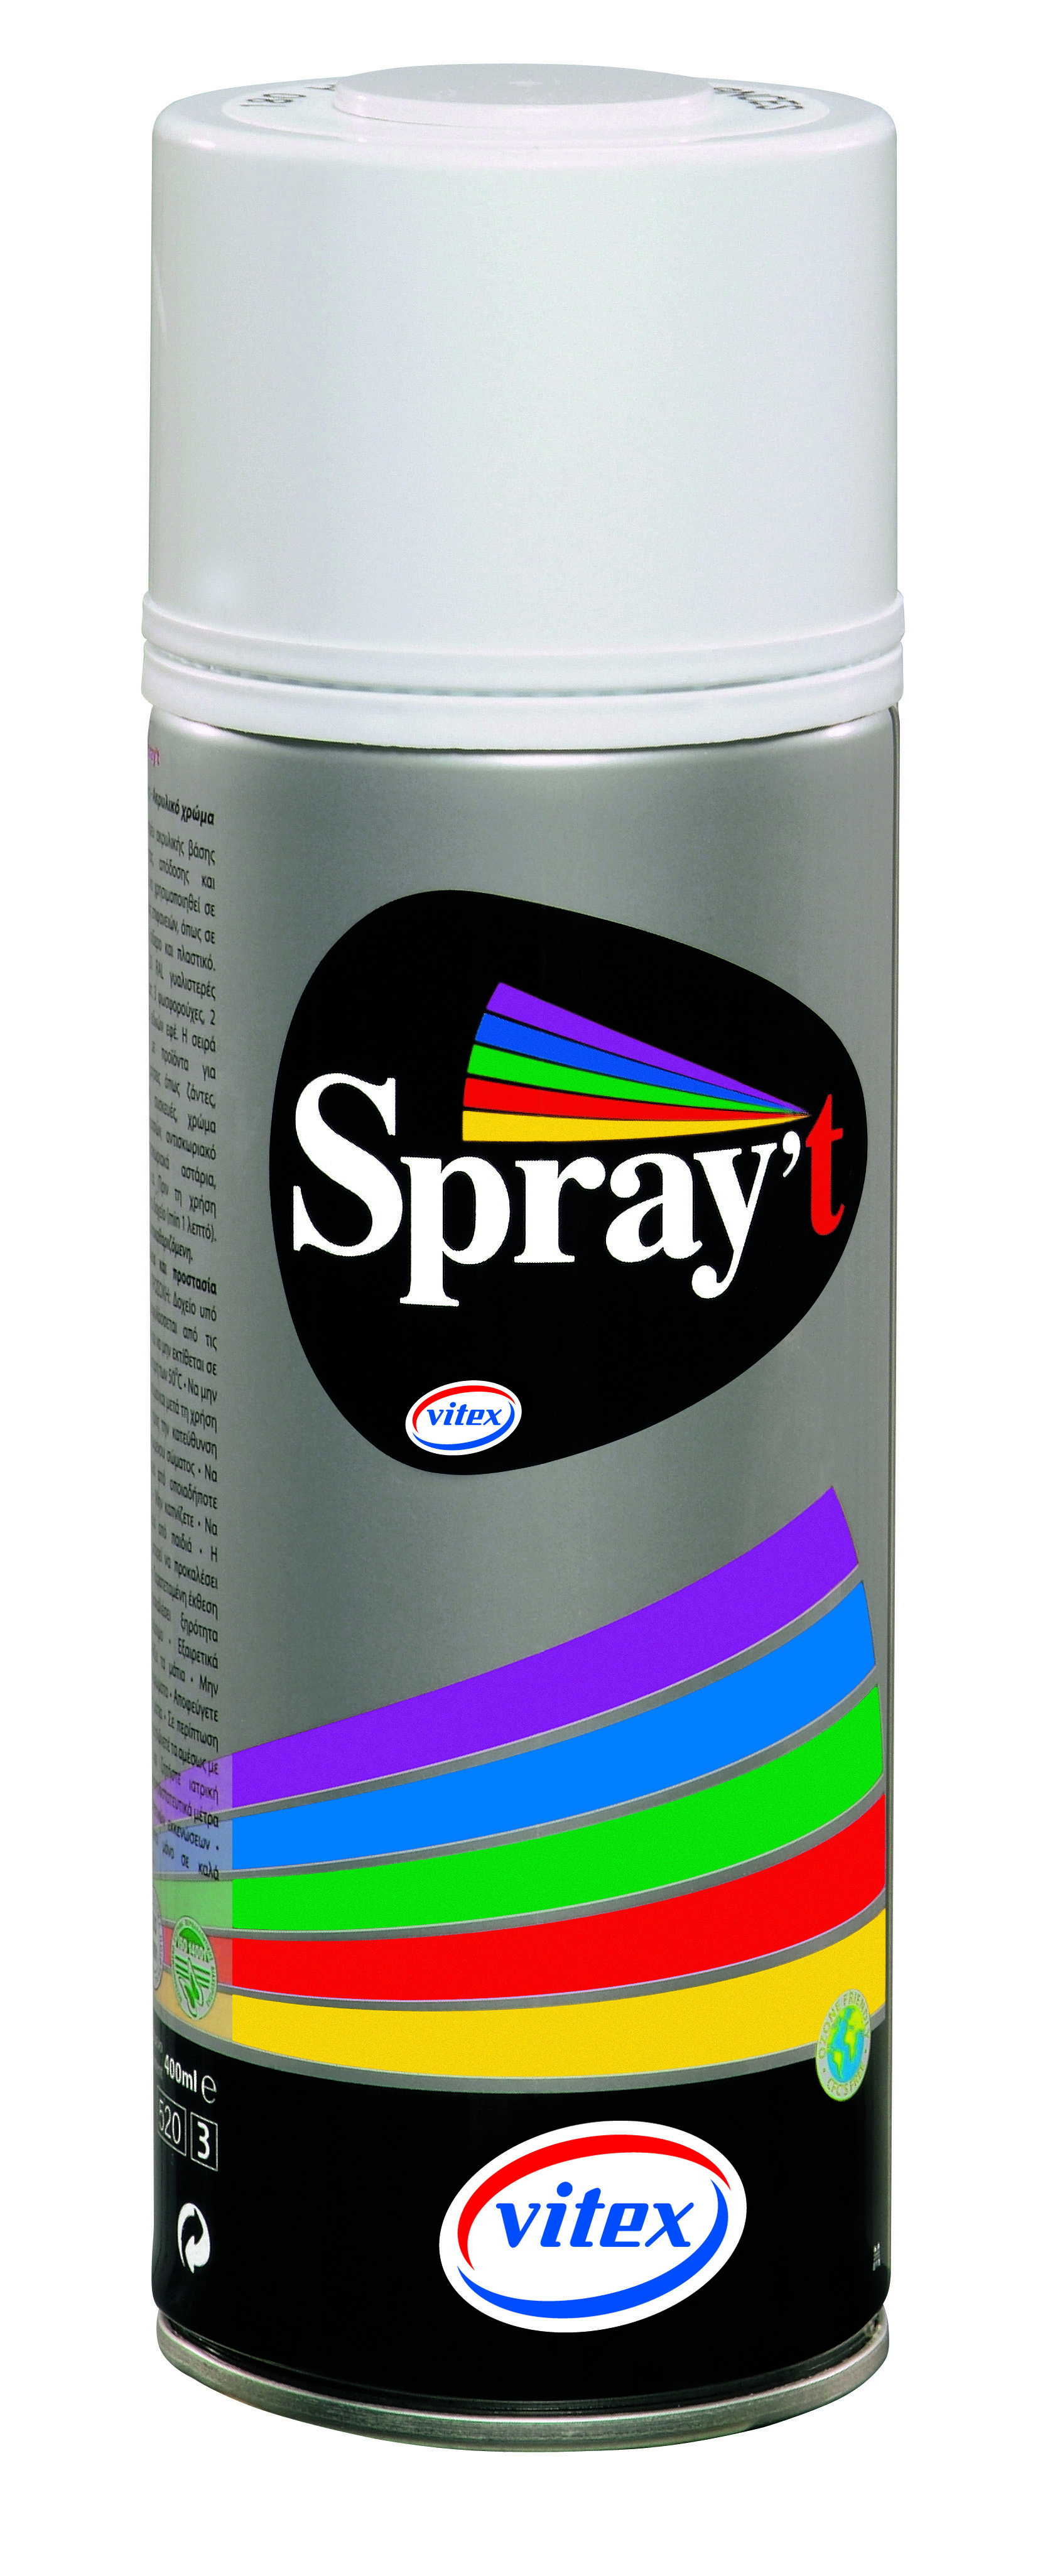 SPRAY 9005 ACRYLIC PAINT (JET BLACK MAT) 400mL